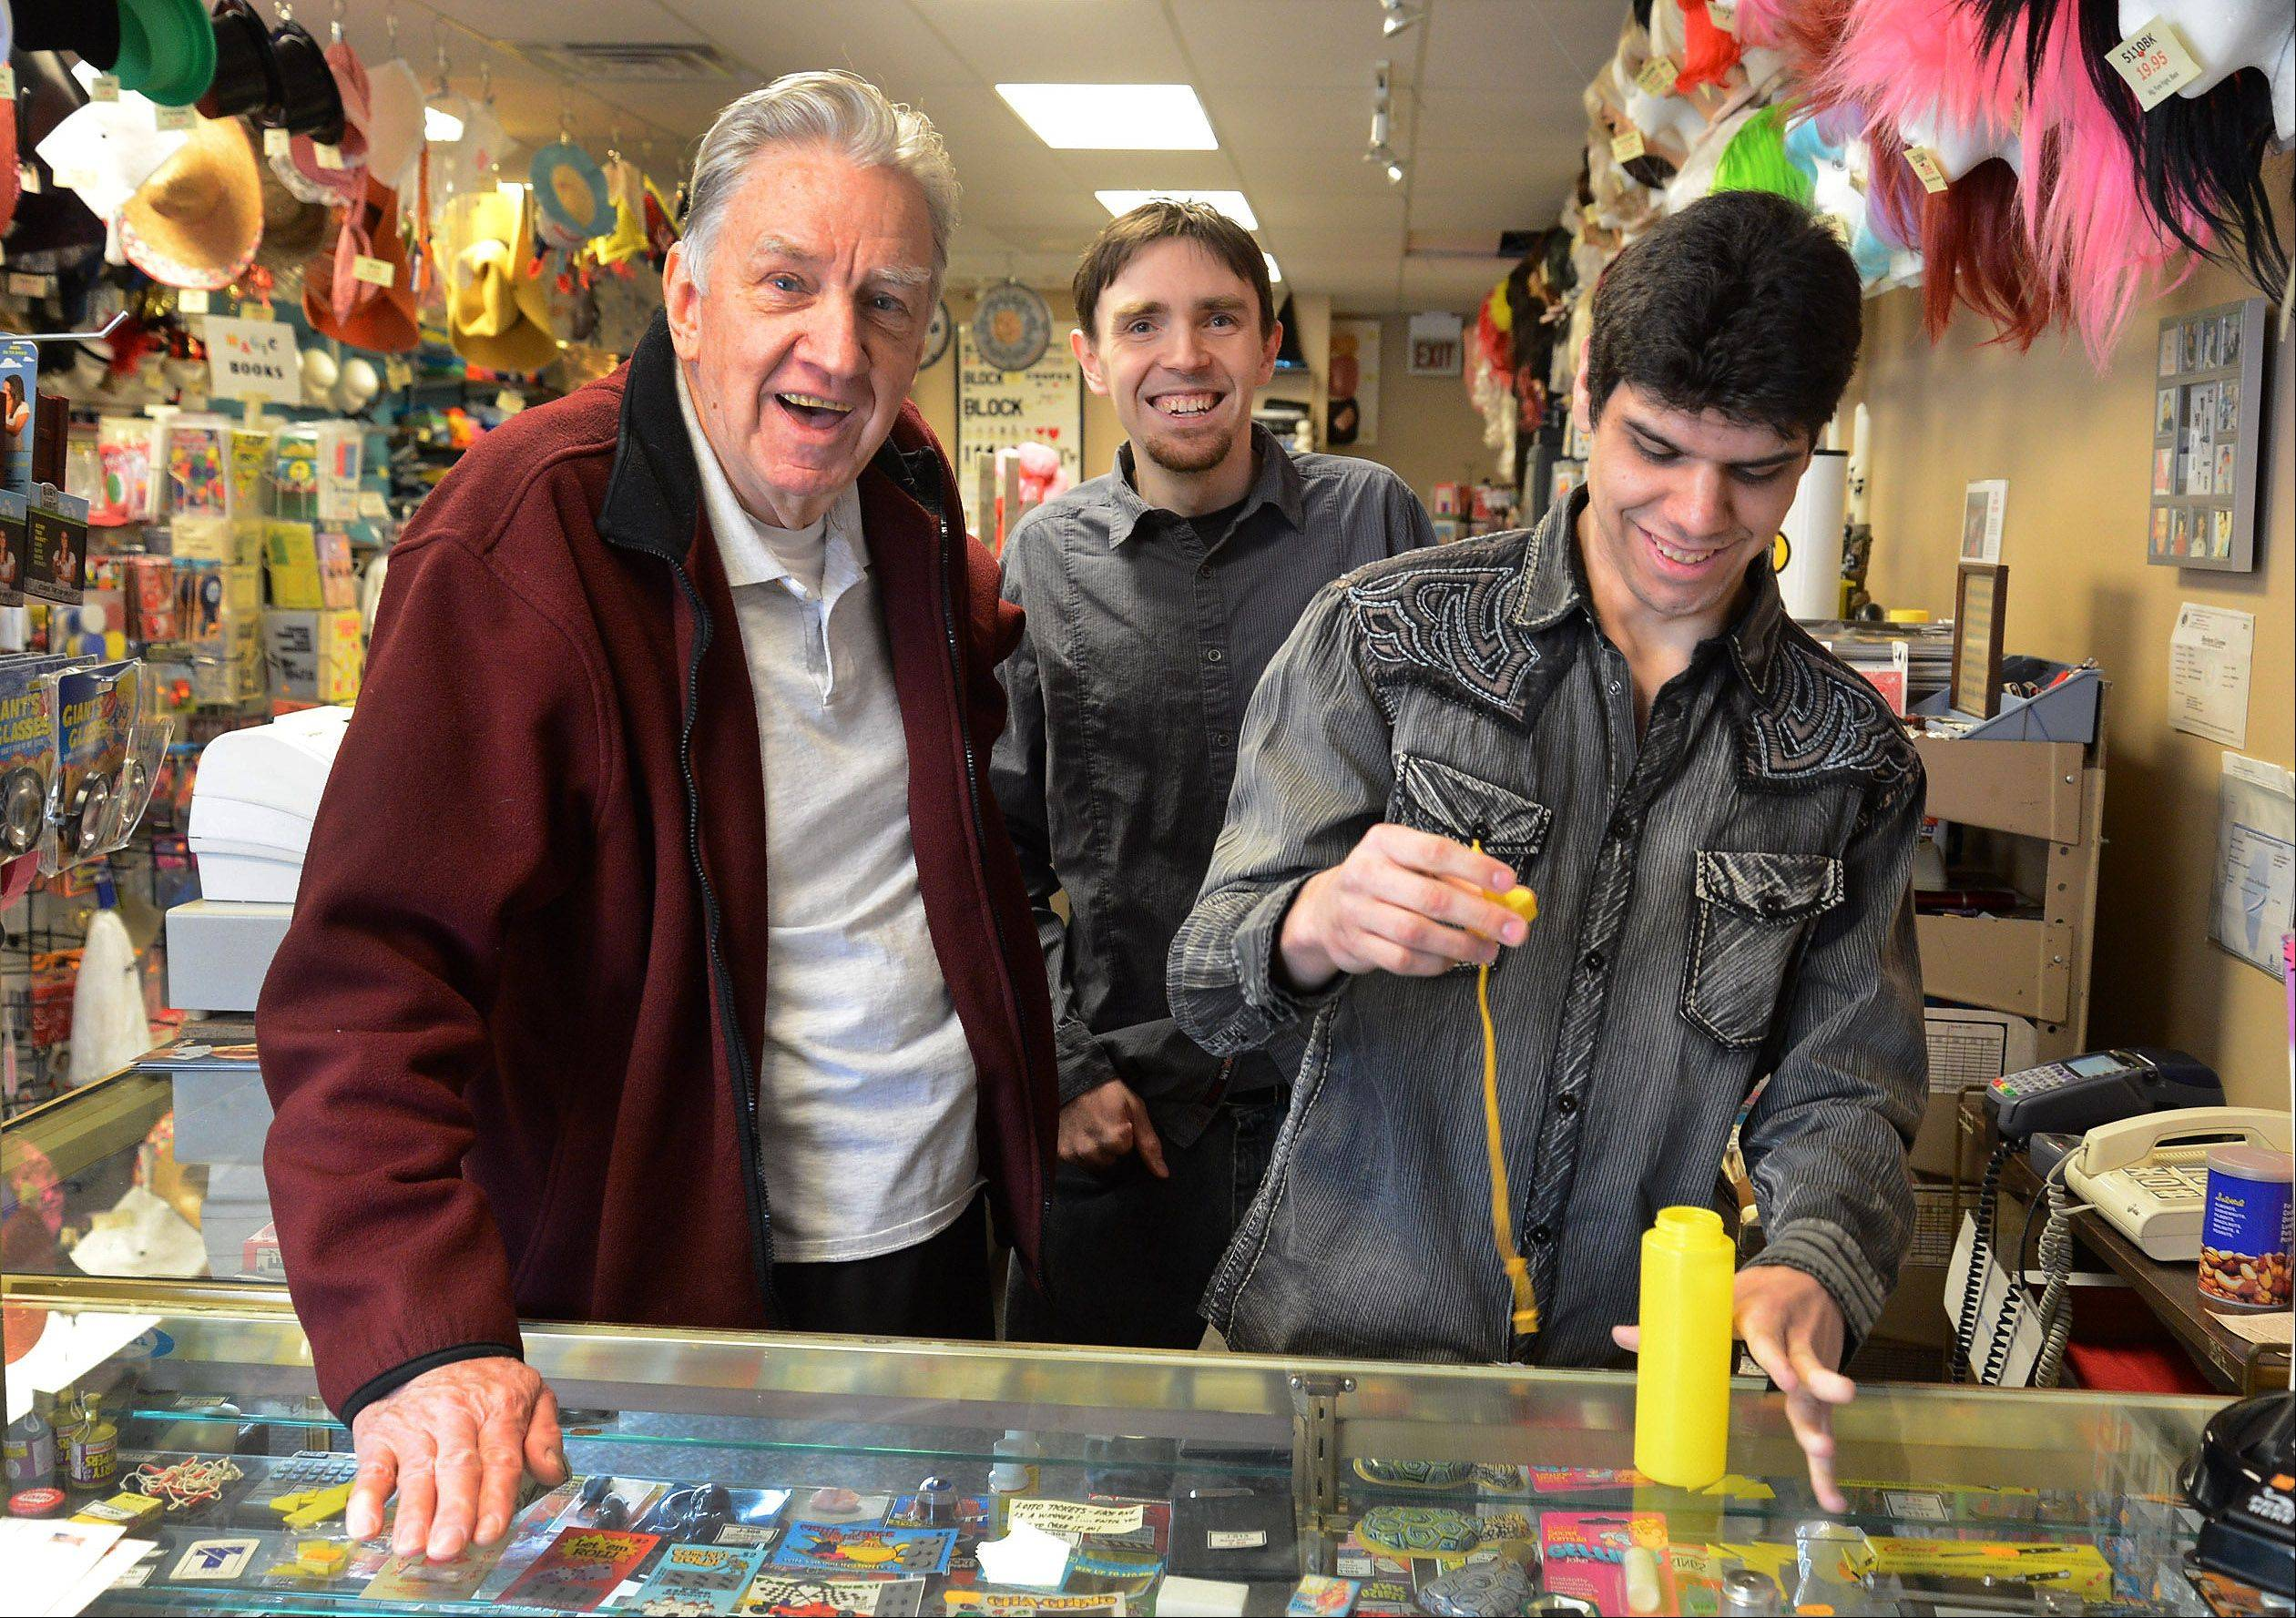 As jokester Trent Rivas reloads the gag mustard squirter, PJ's Trick Shop founder Phil Johnson, left, and his son Brian Johnson can't help but smile during this scene at their store in Arlington Heights.